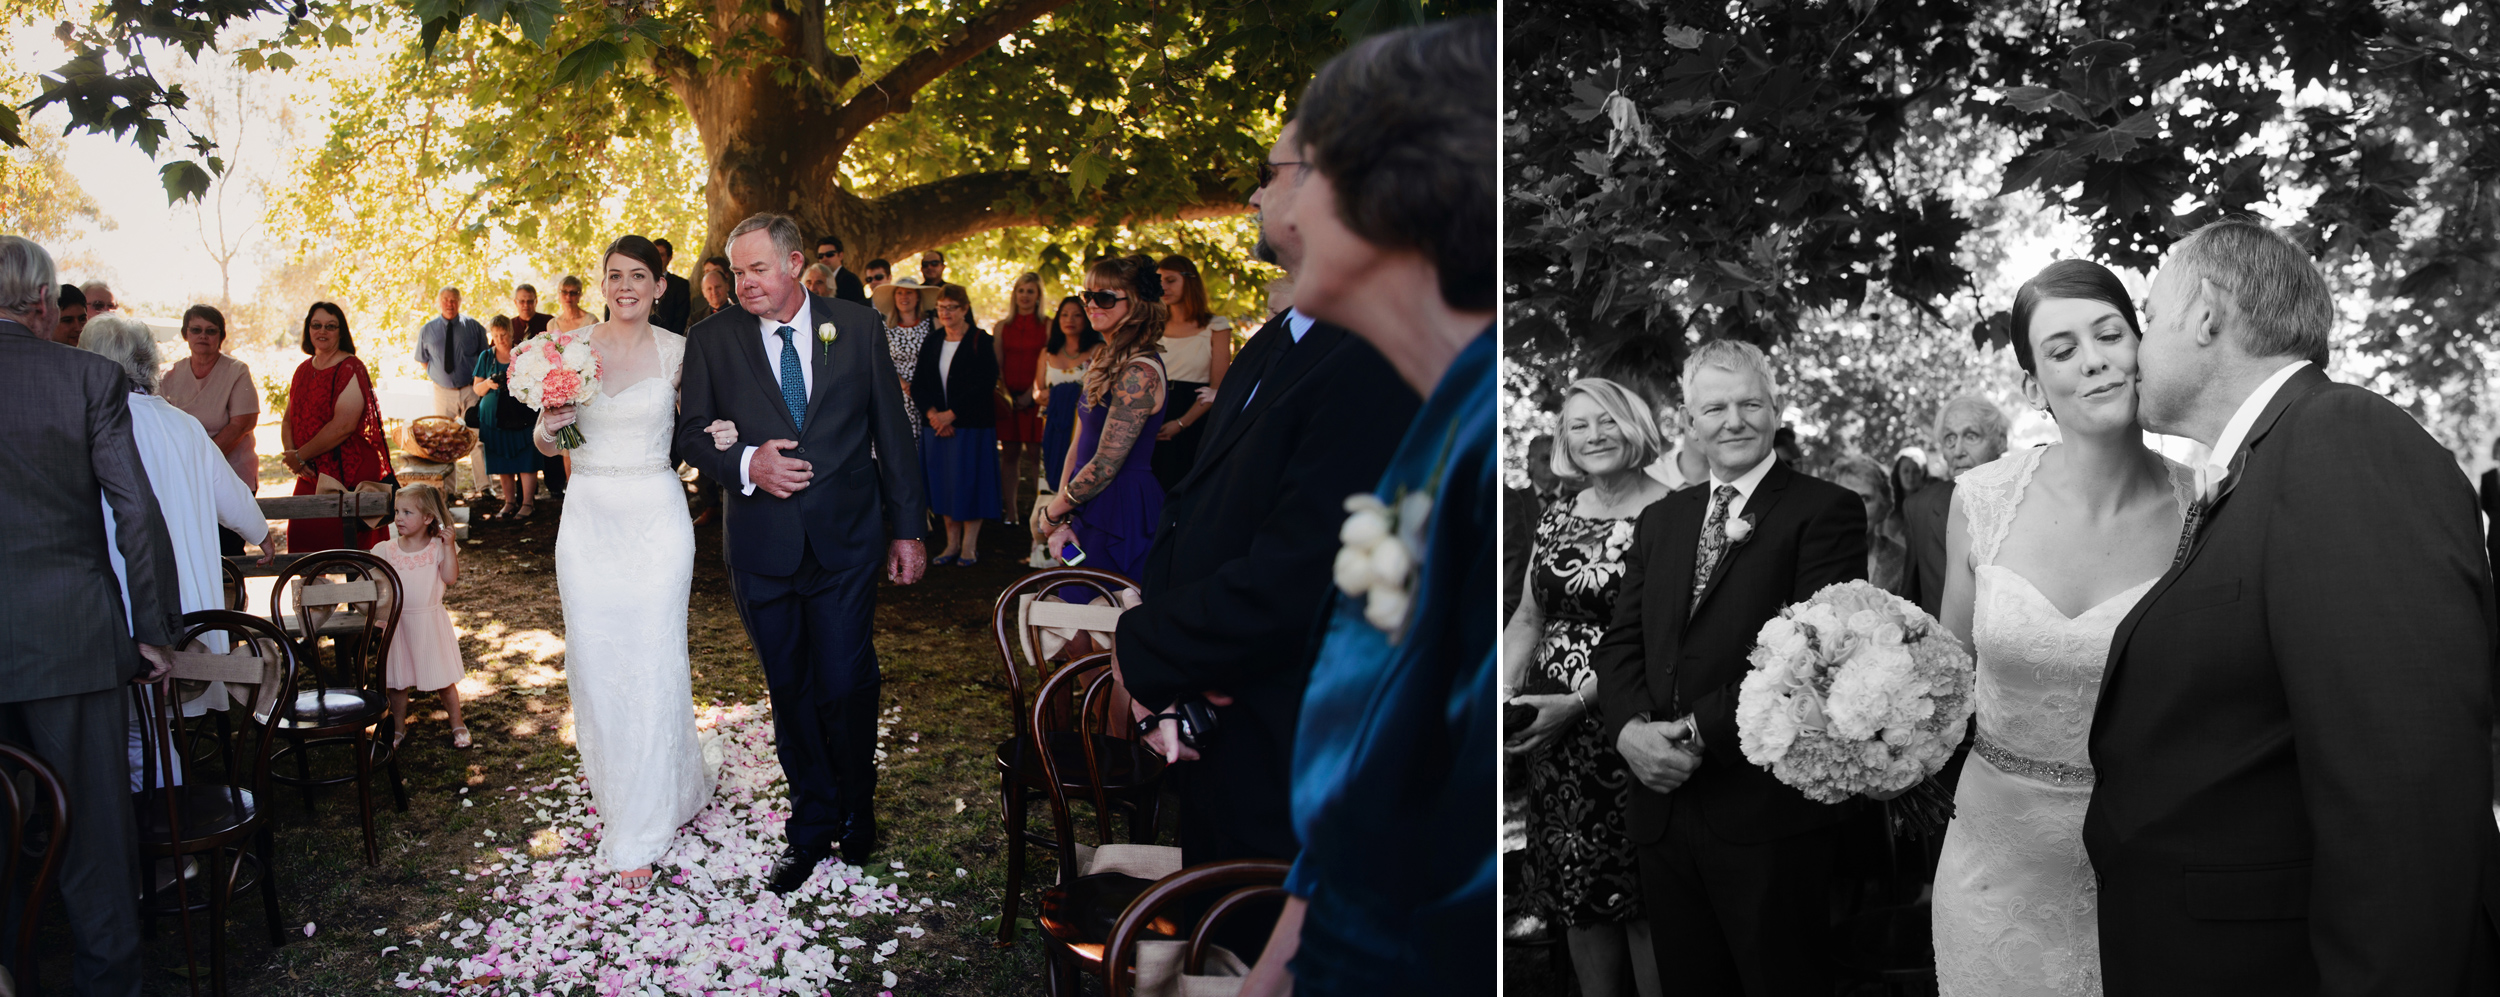 euroa_butter_factory_wedding_photography_15.jpg